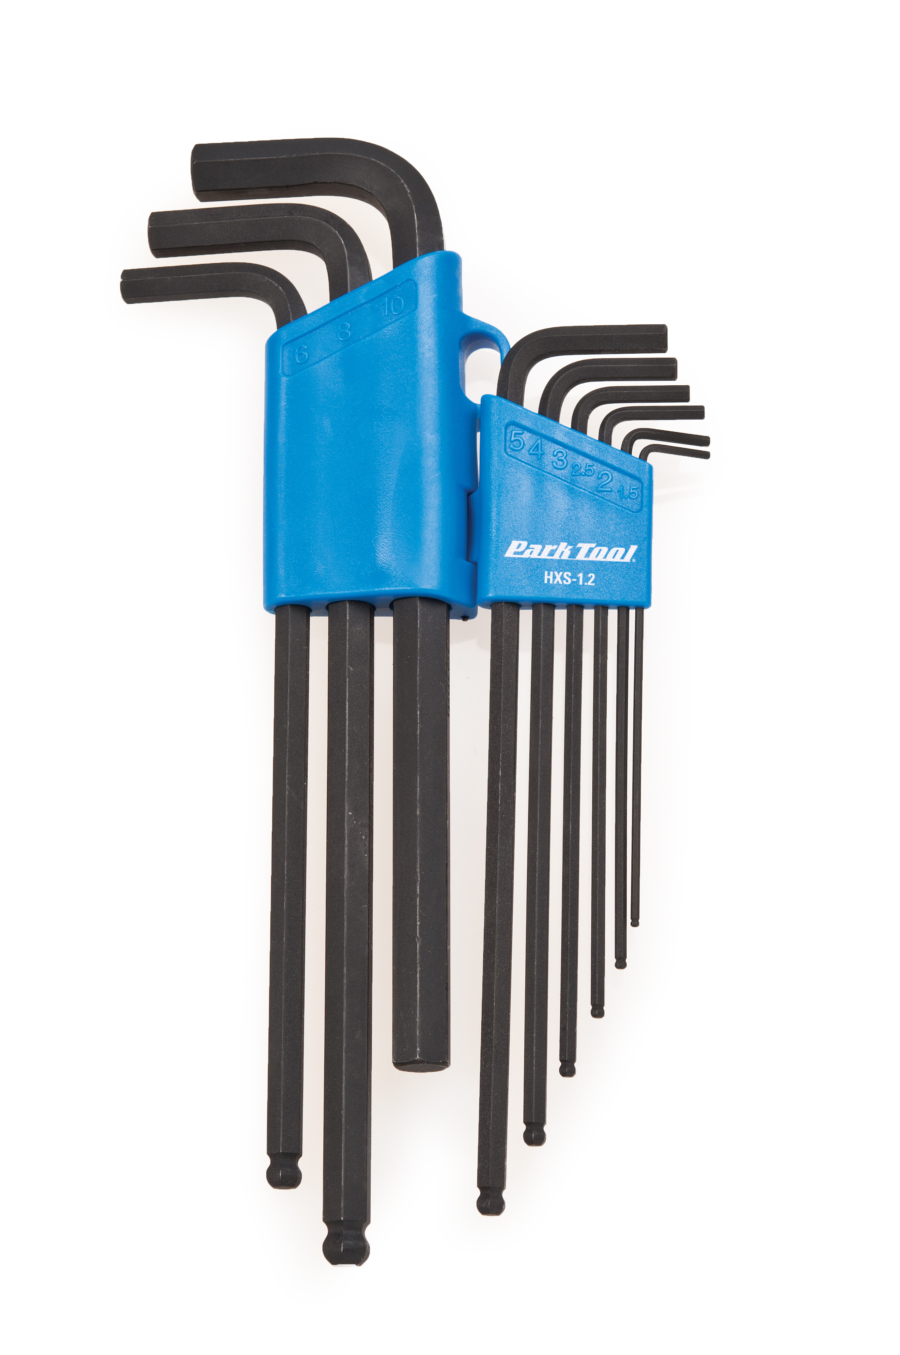 Hxs 1 2 Professional L Shaped Hex Wrench Set Park Tool